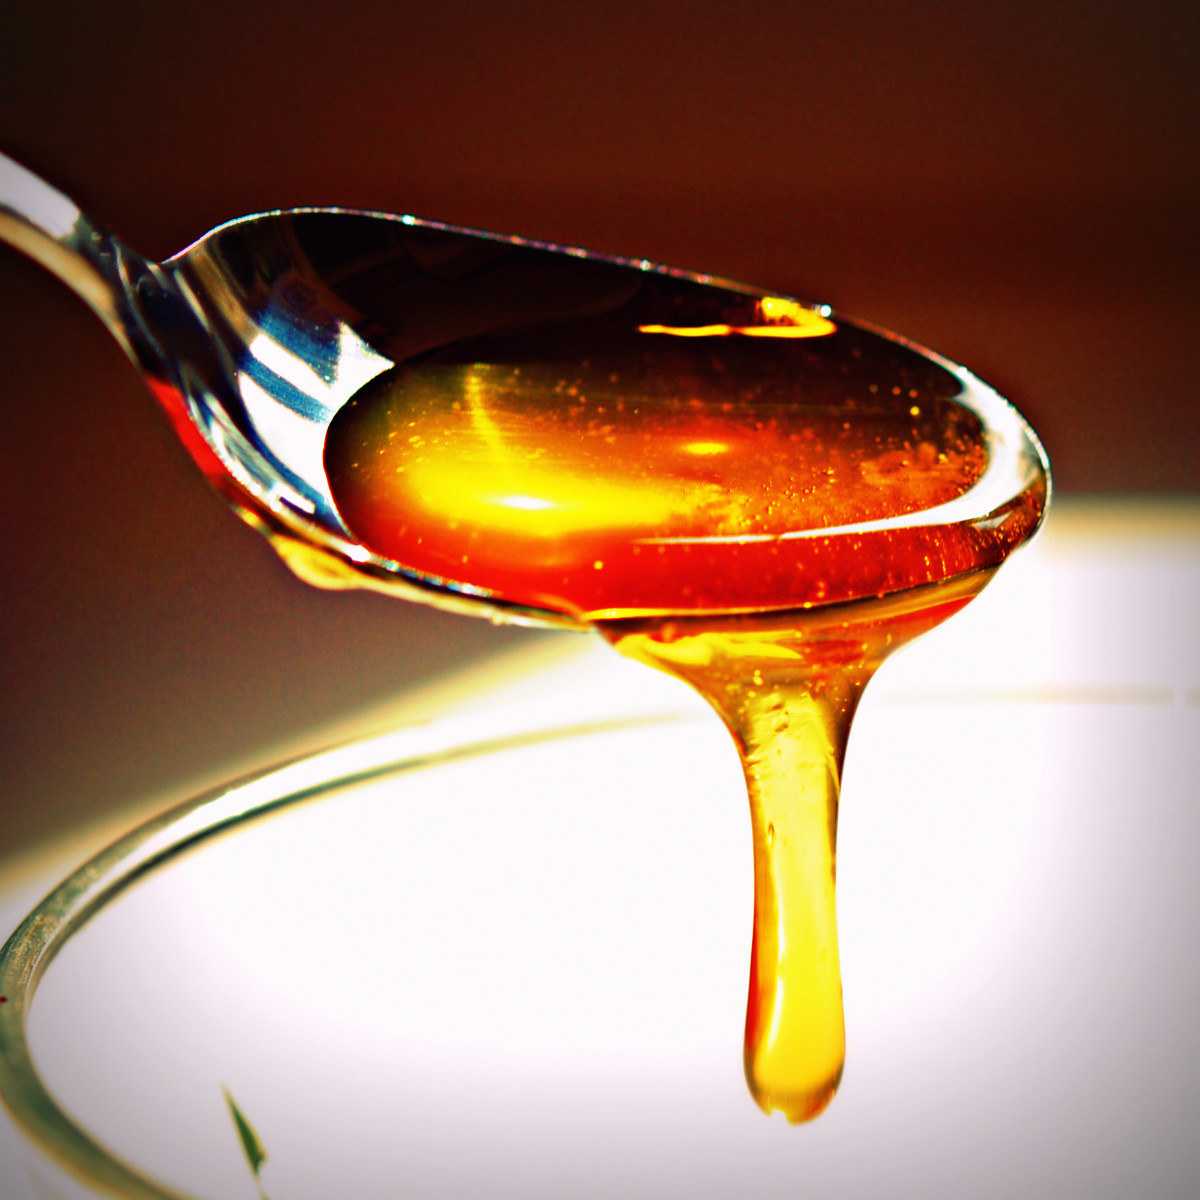 Honey is a great antinflammatory and antibacterial ingredient making it ideal for use in an acne treatment. In fact, many over the counter products use honey extracts.